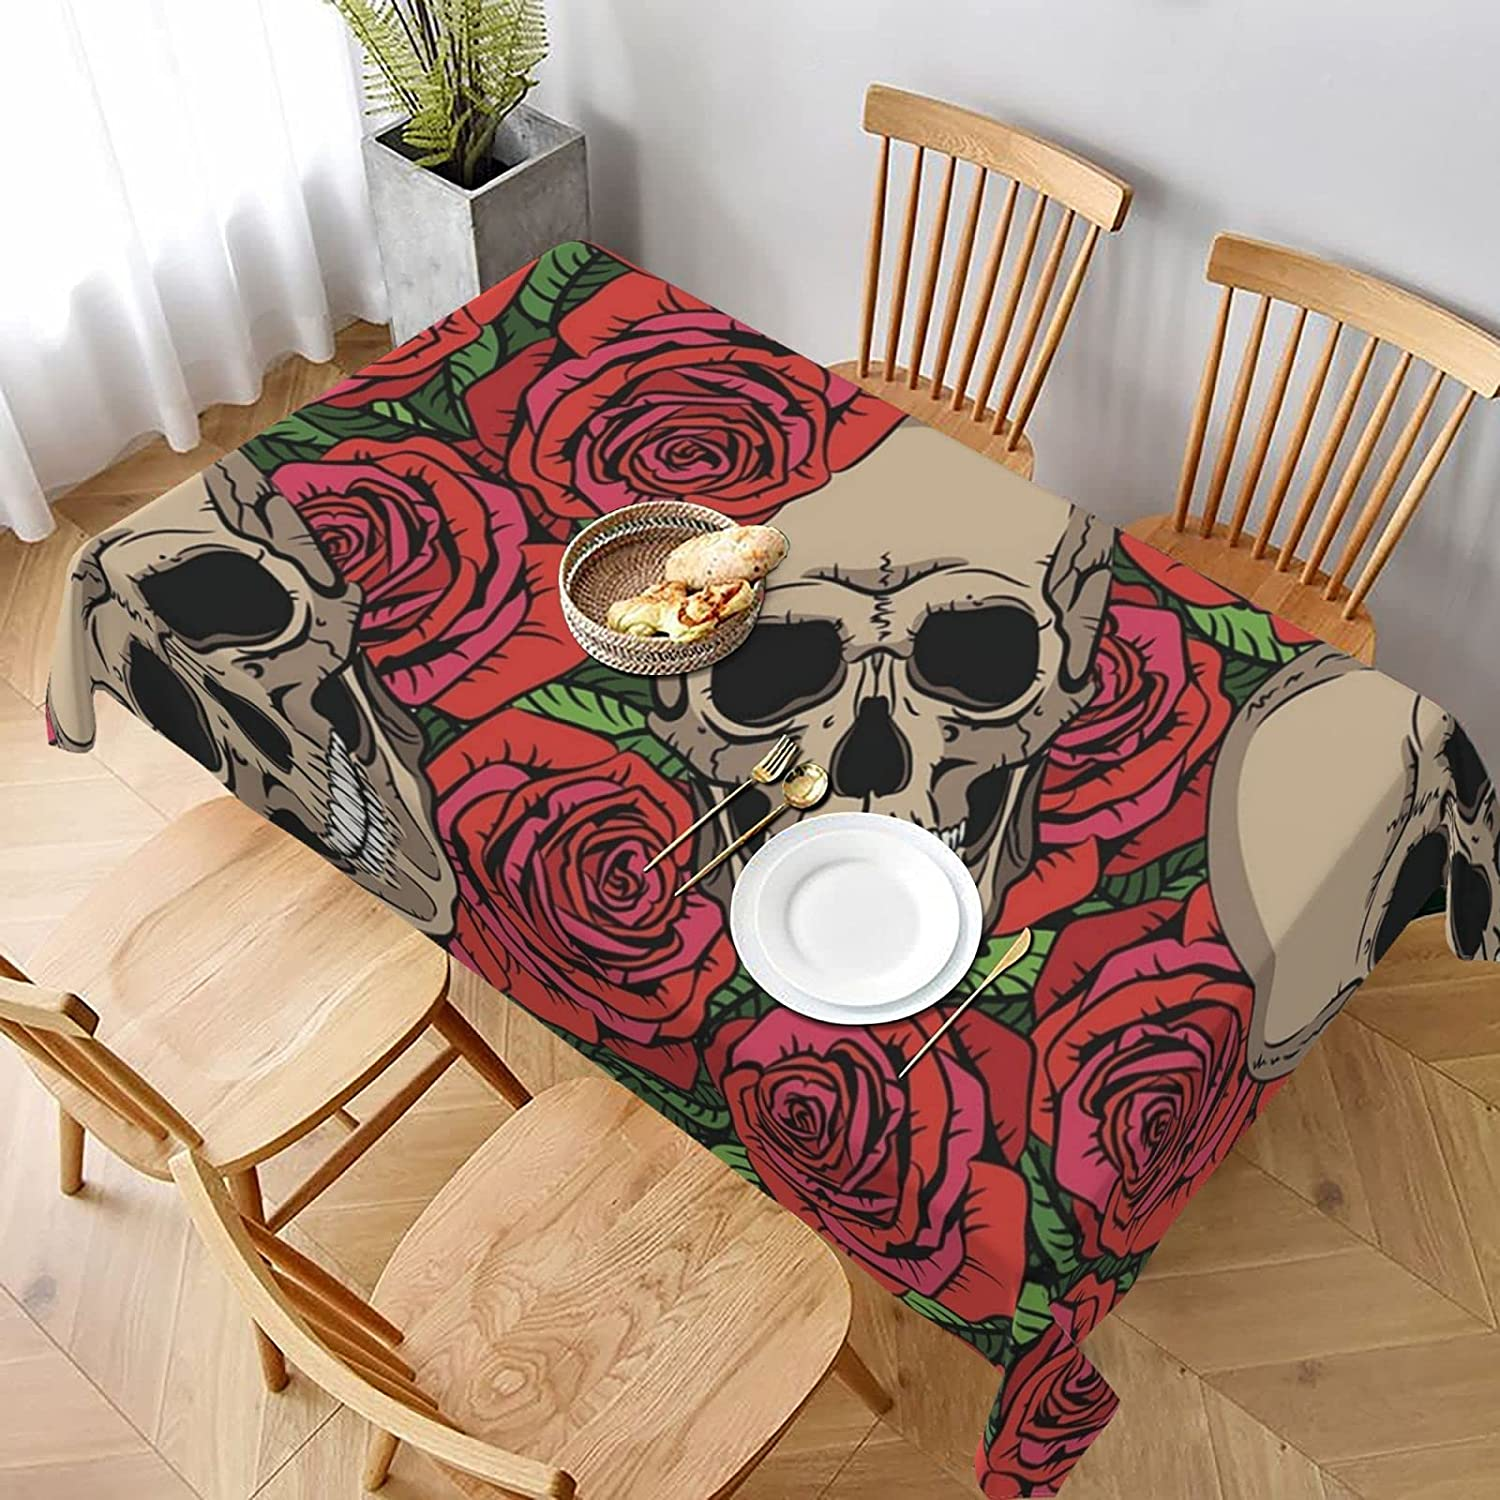 New sales Skulls and Red Roses Super sale Stain Spillproof Resistant Washable Ta